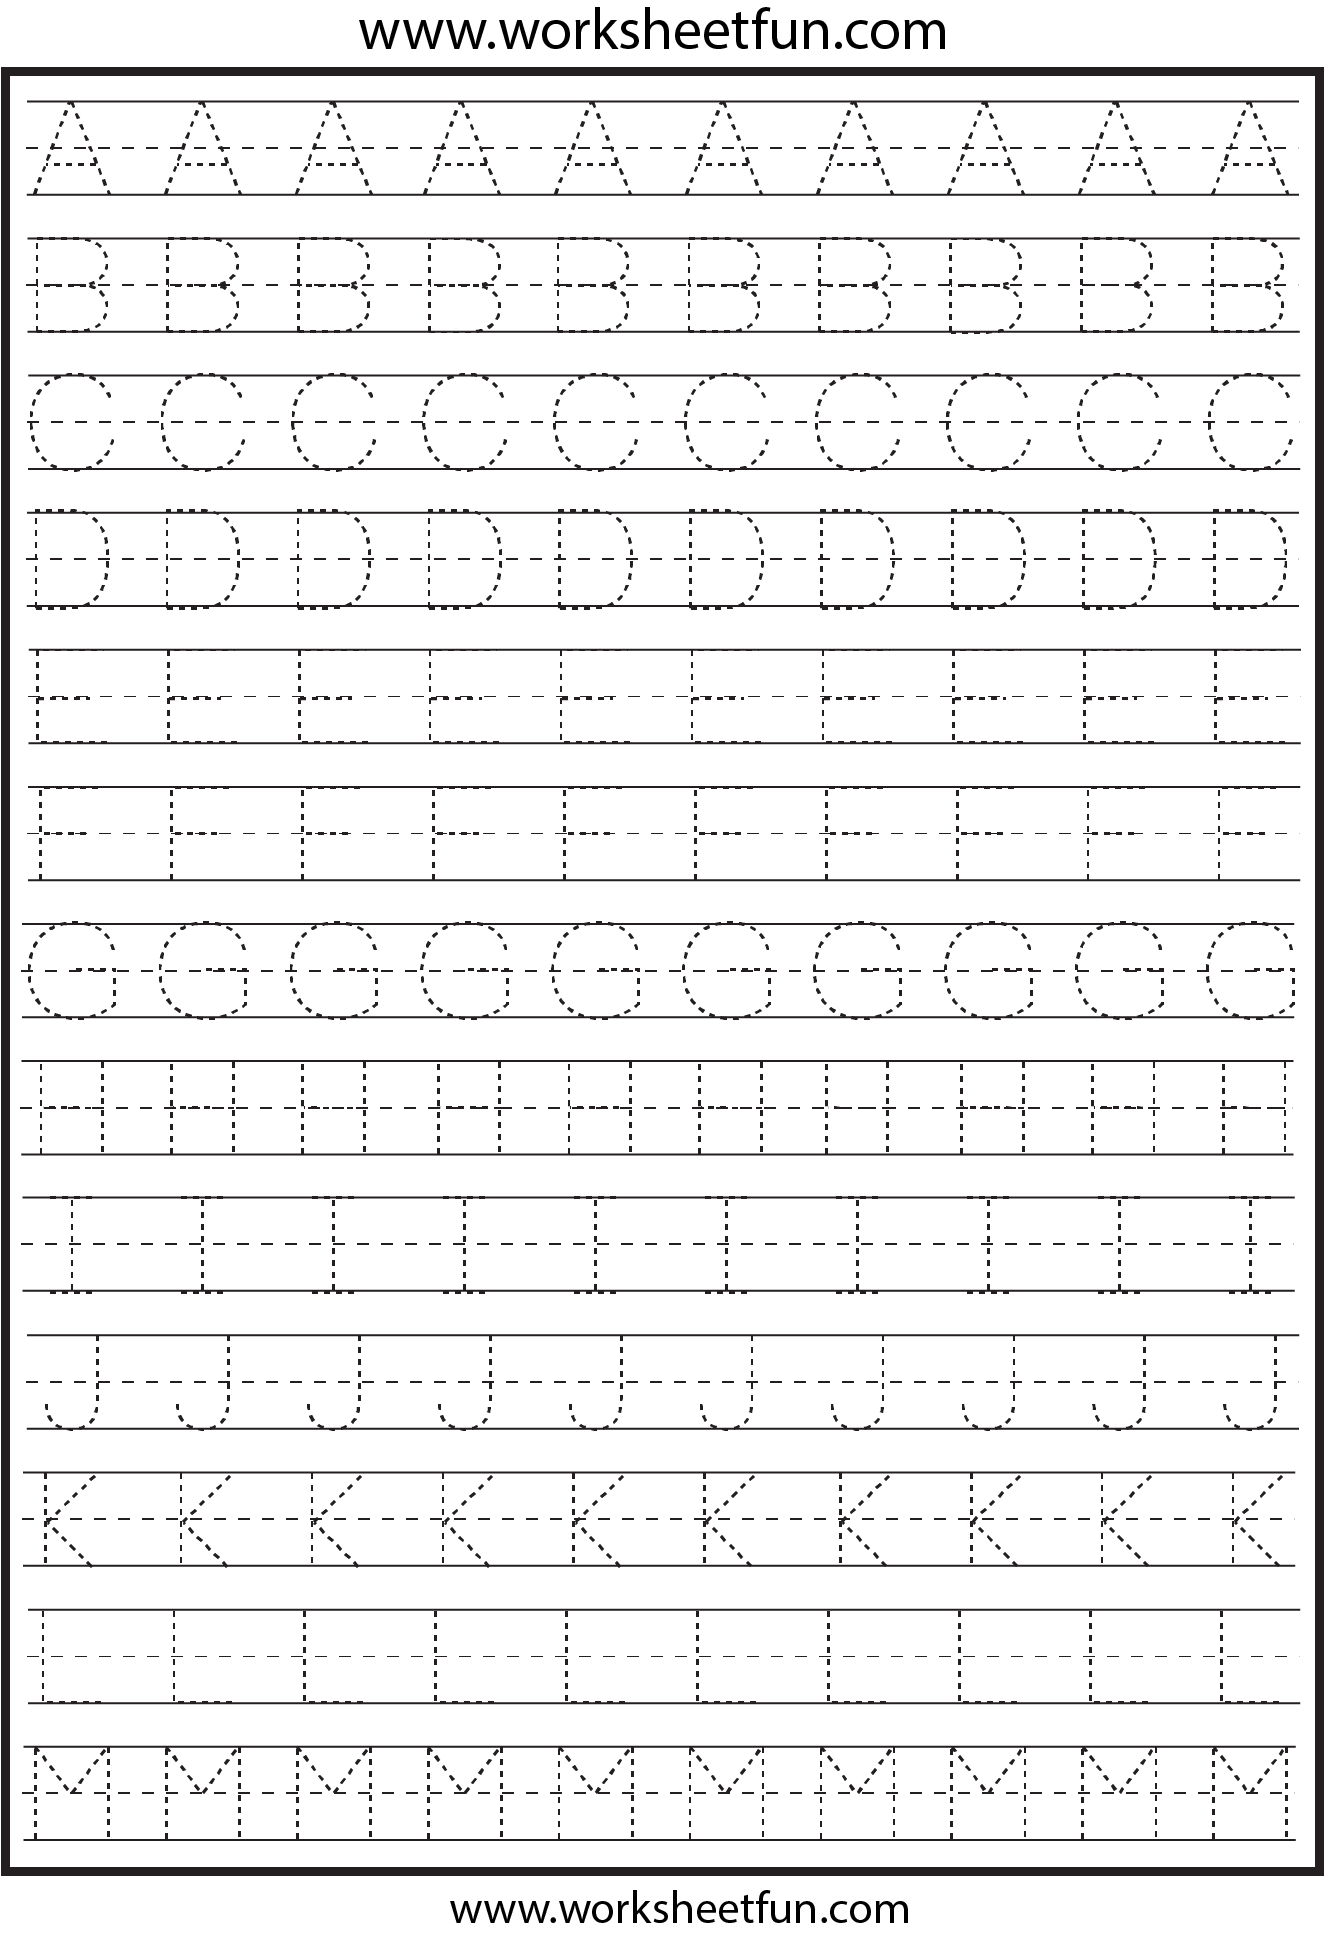 Worksheet Alphabet Tracing Worksheets letter tracing worksheets yelstk letters for kindergarten reocurent worksheets